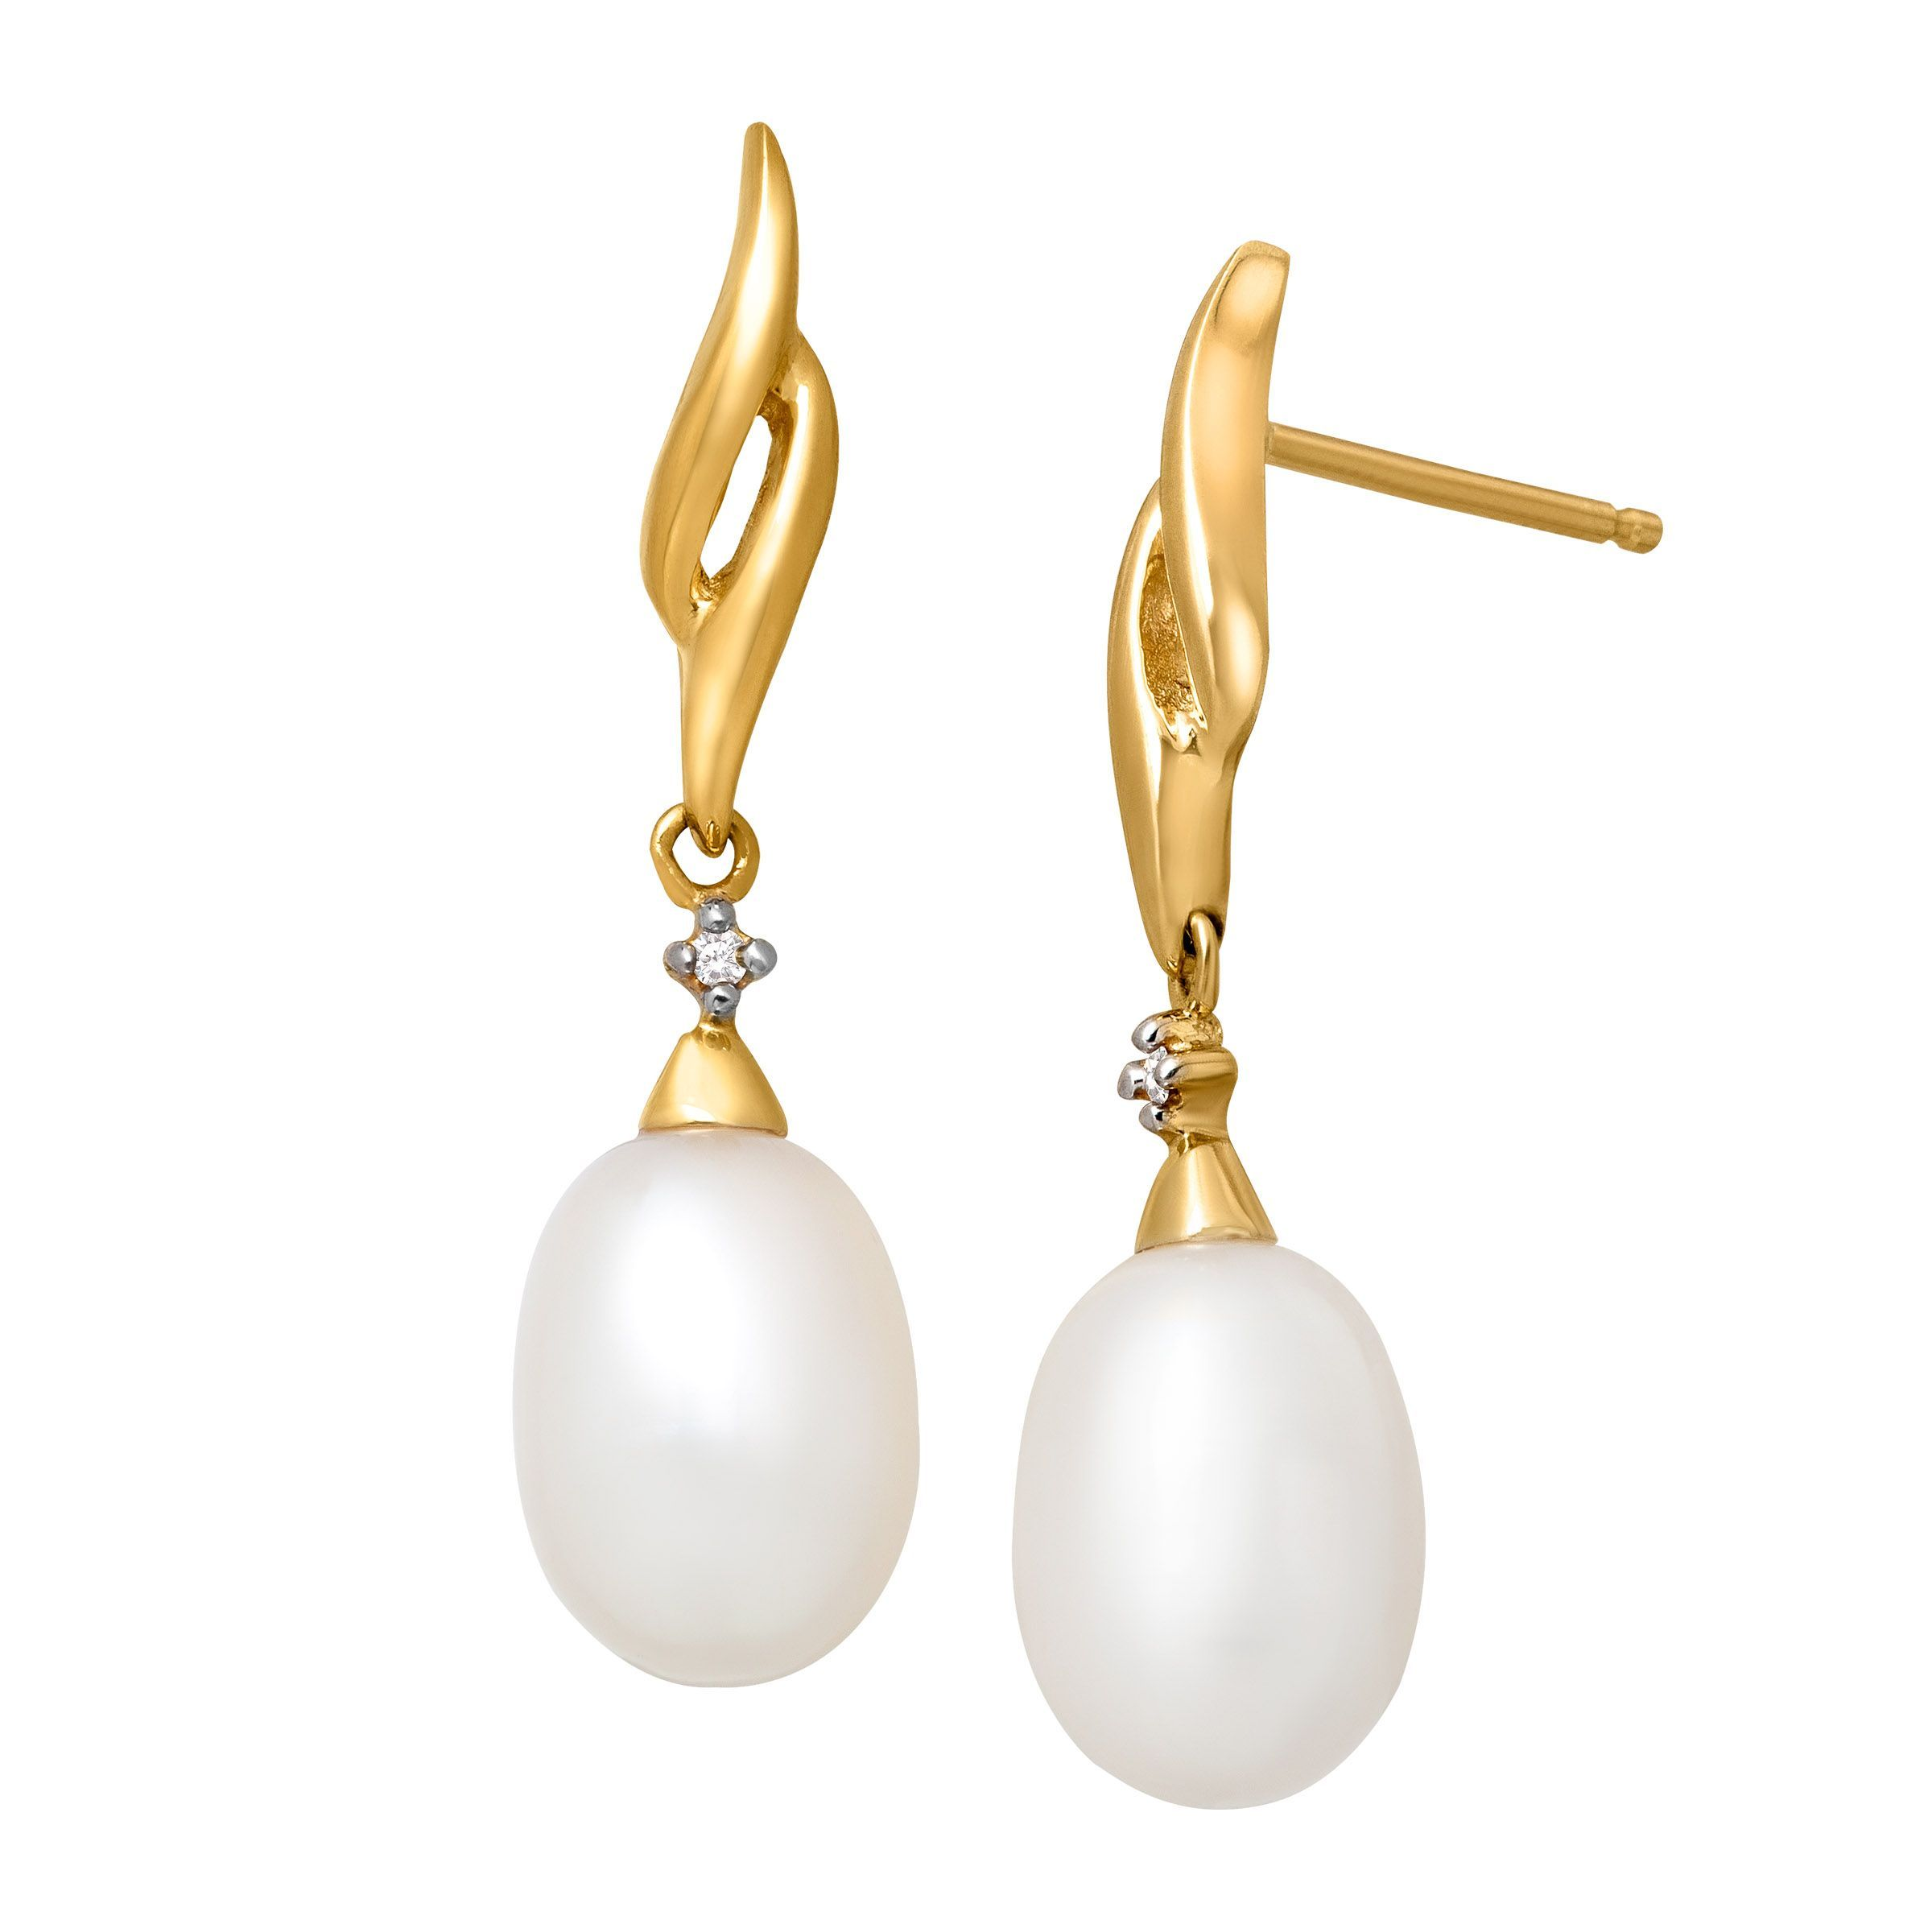 Details About Freshwater Pearl Drop Earrings With Diamonds In 14k Gold